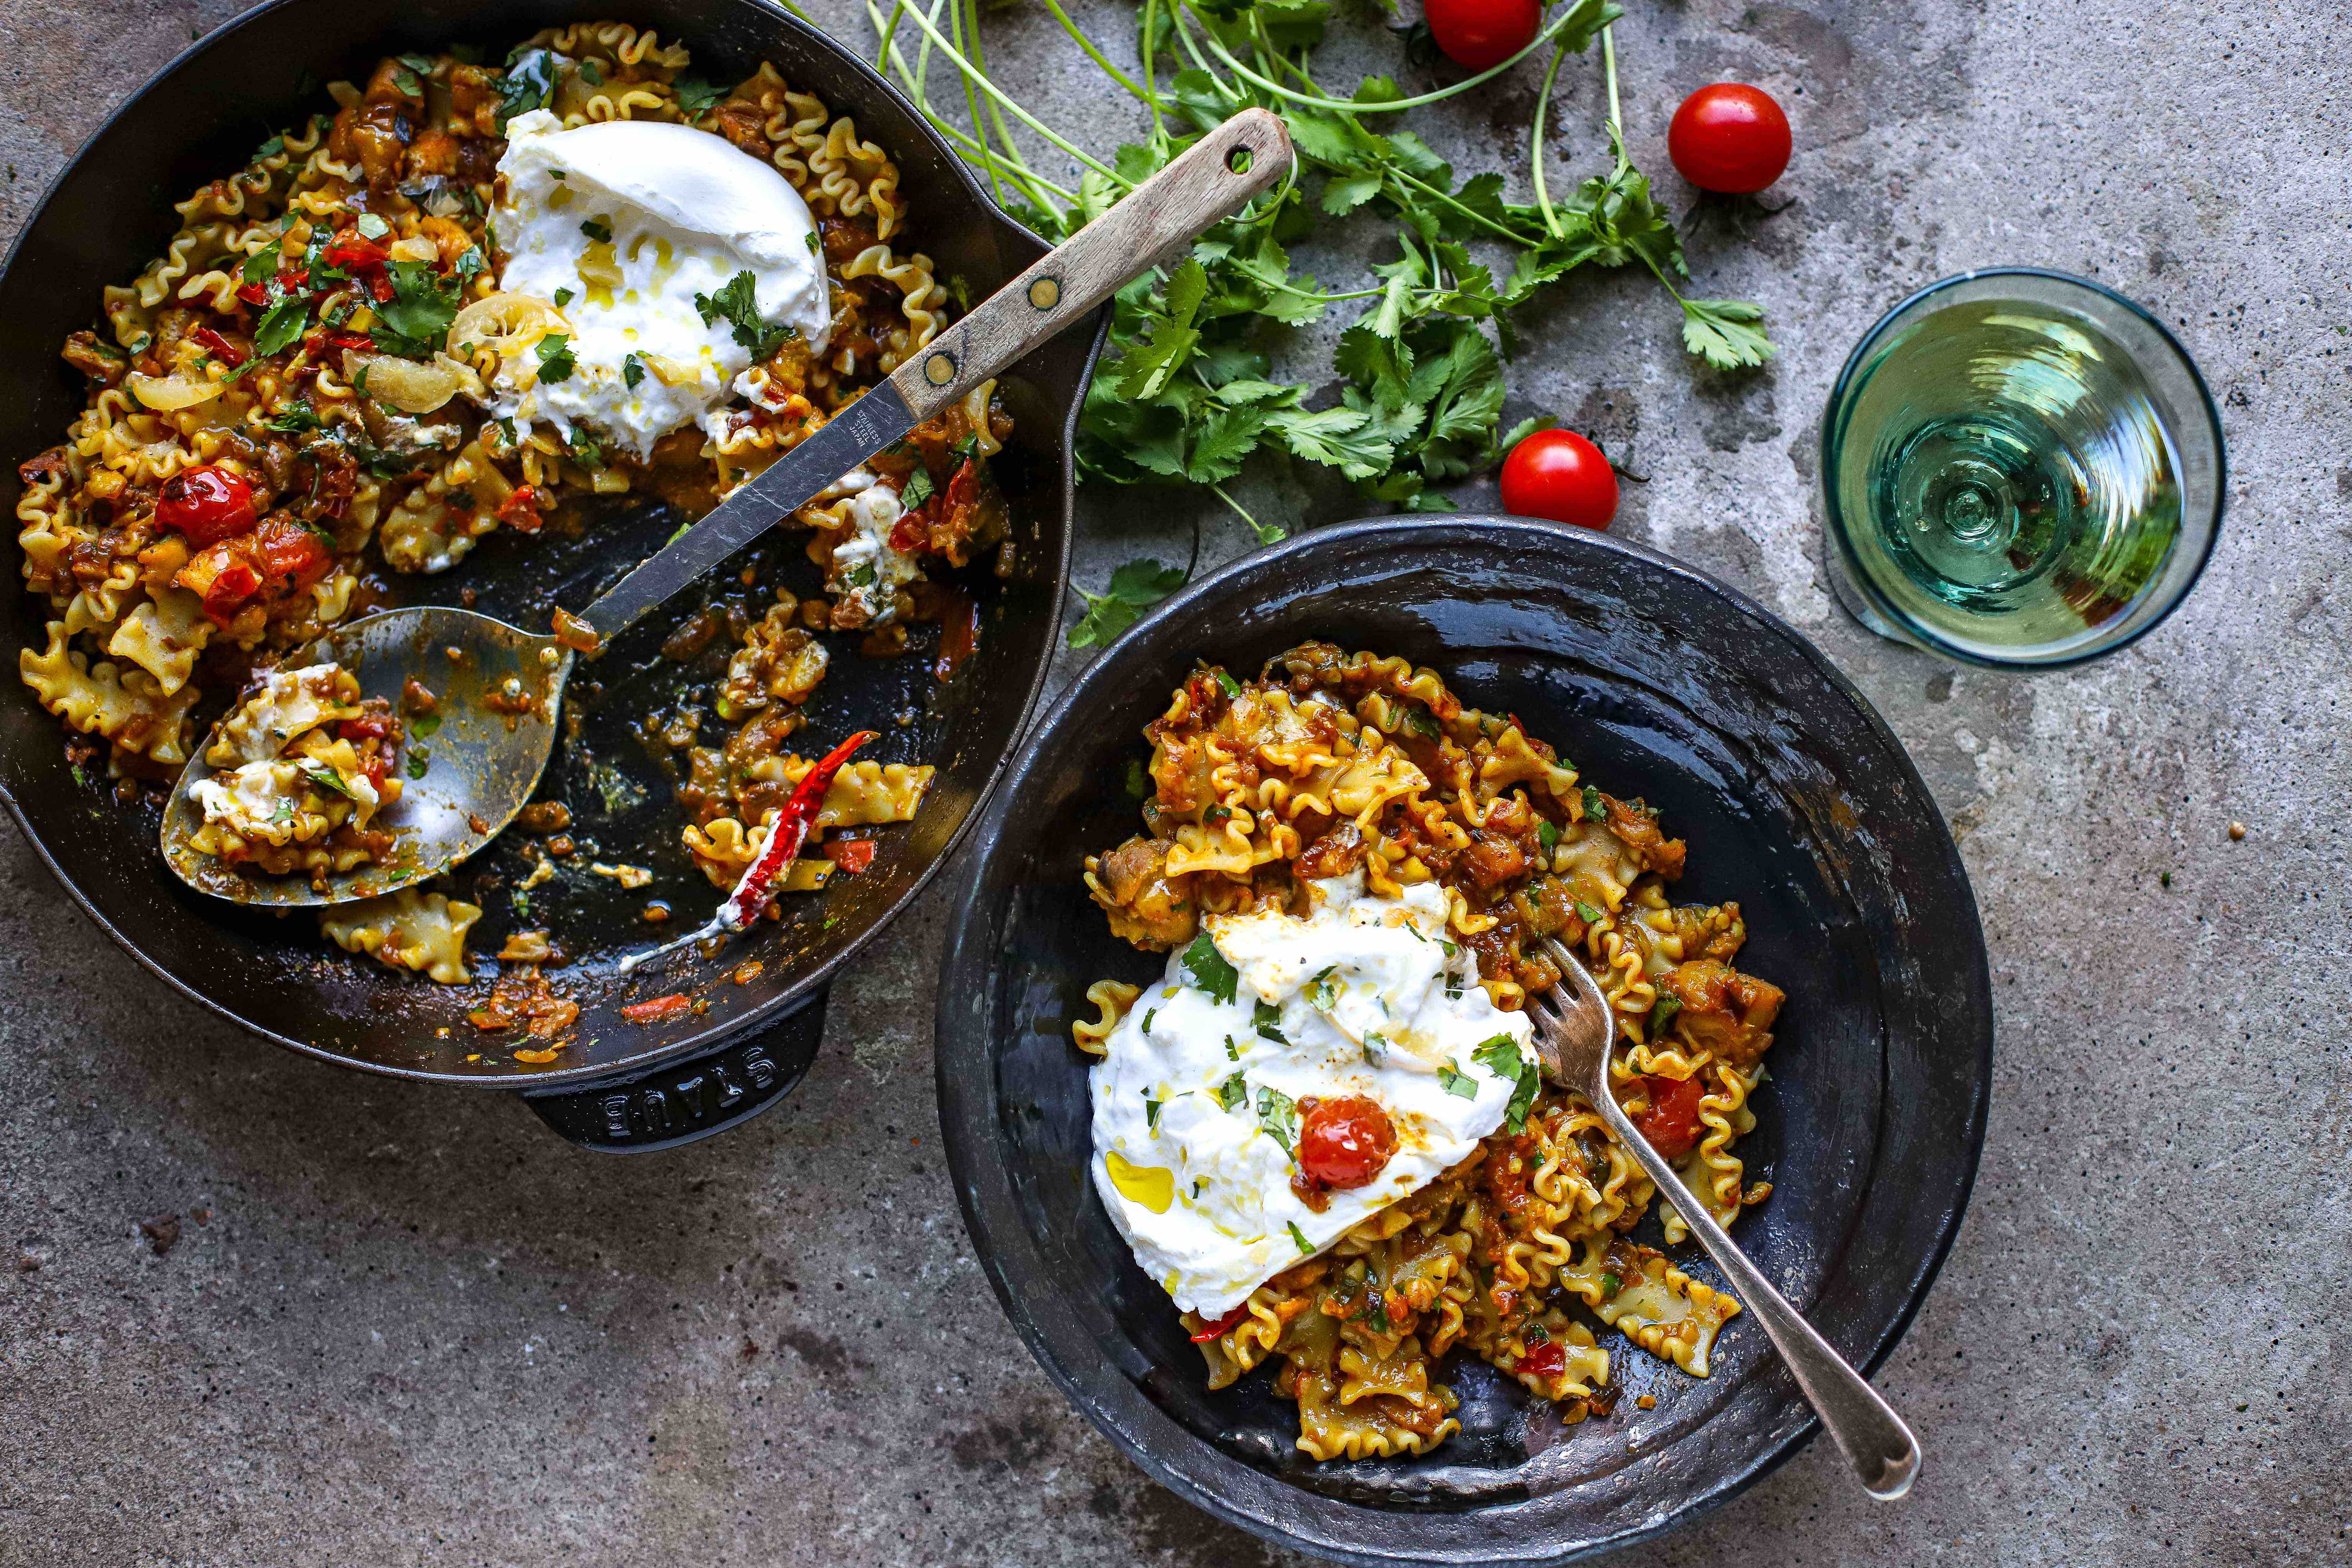 baingan bharta pasta with burrata in skillet and bowl